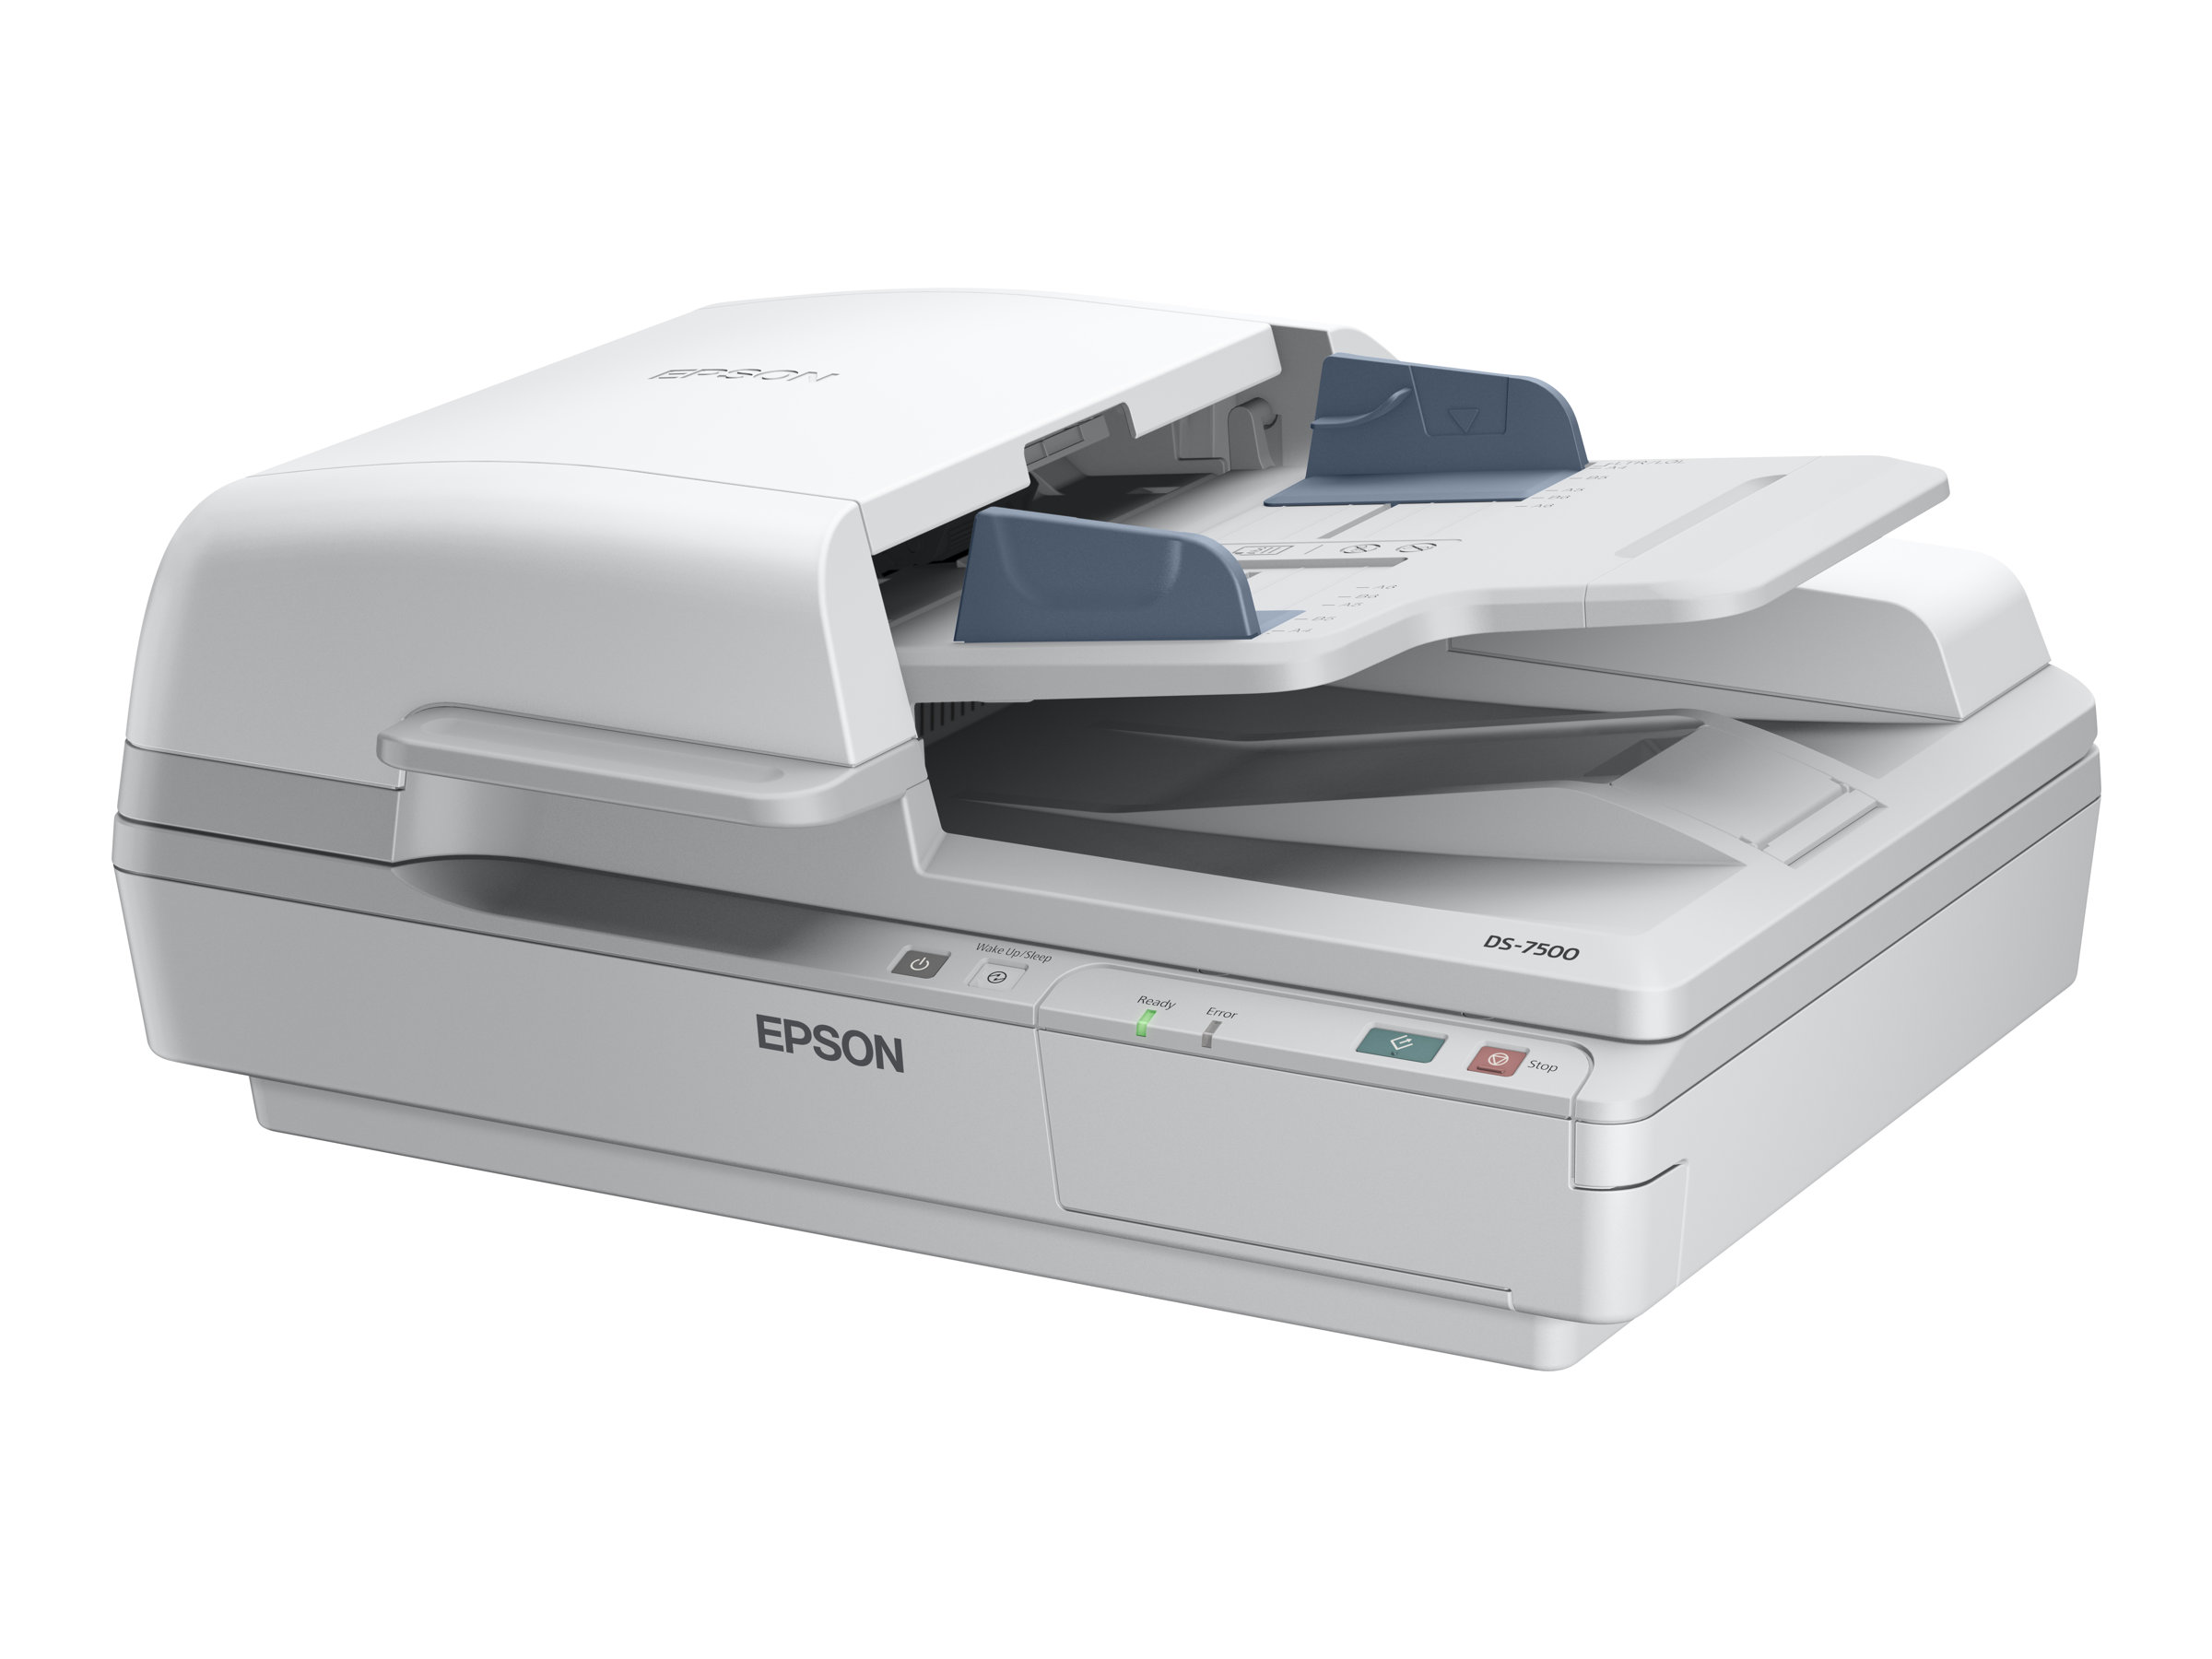 Epson WorkForce DS-6500 - scanner de documents A4 - 1200 ppp x 1200 ppp - 25ppm